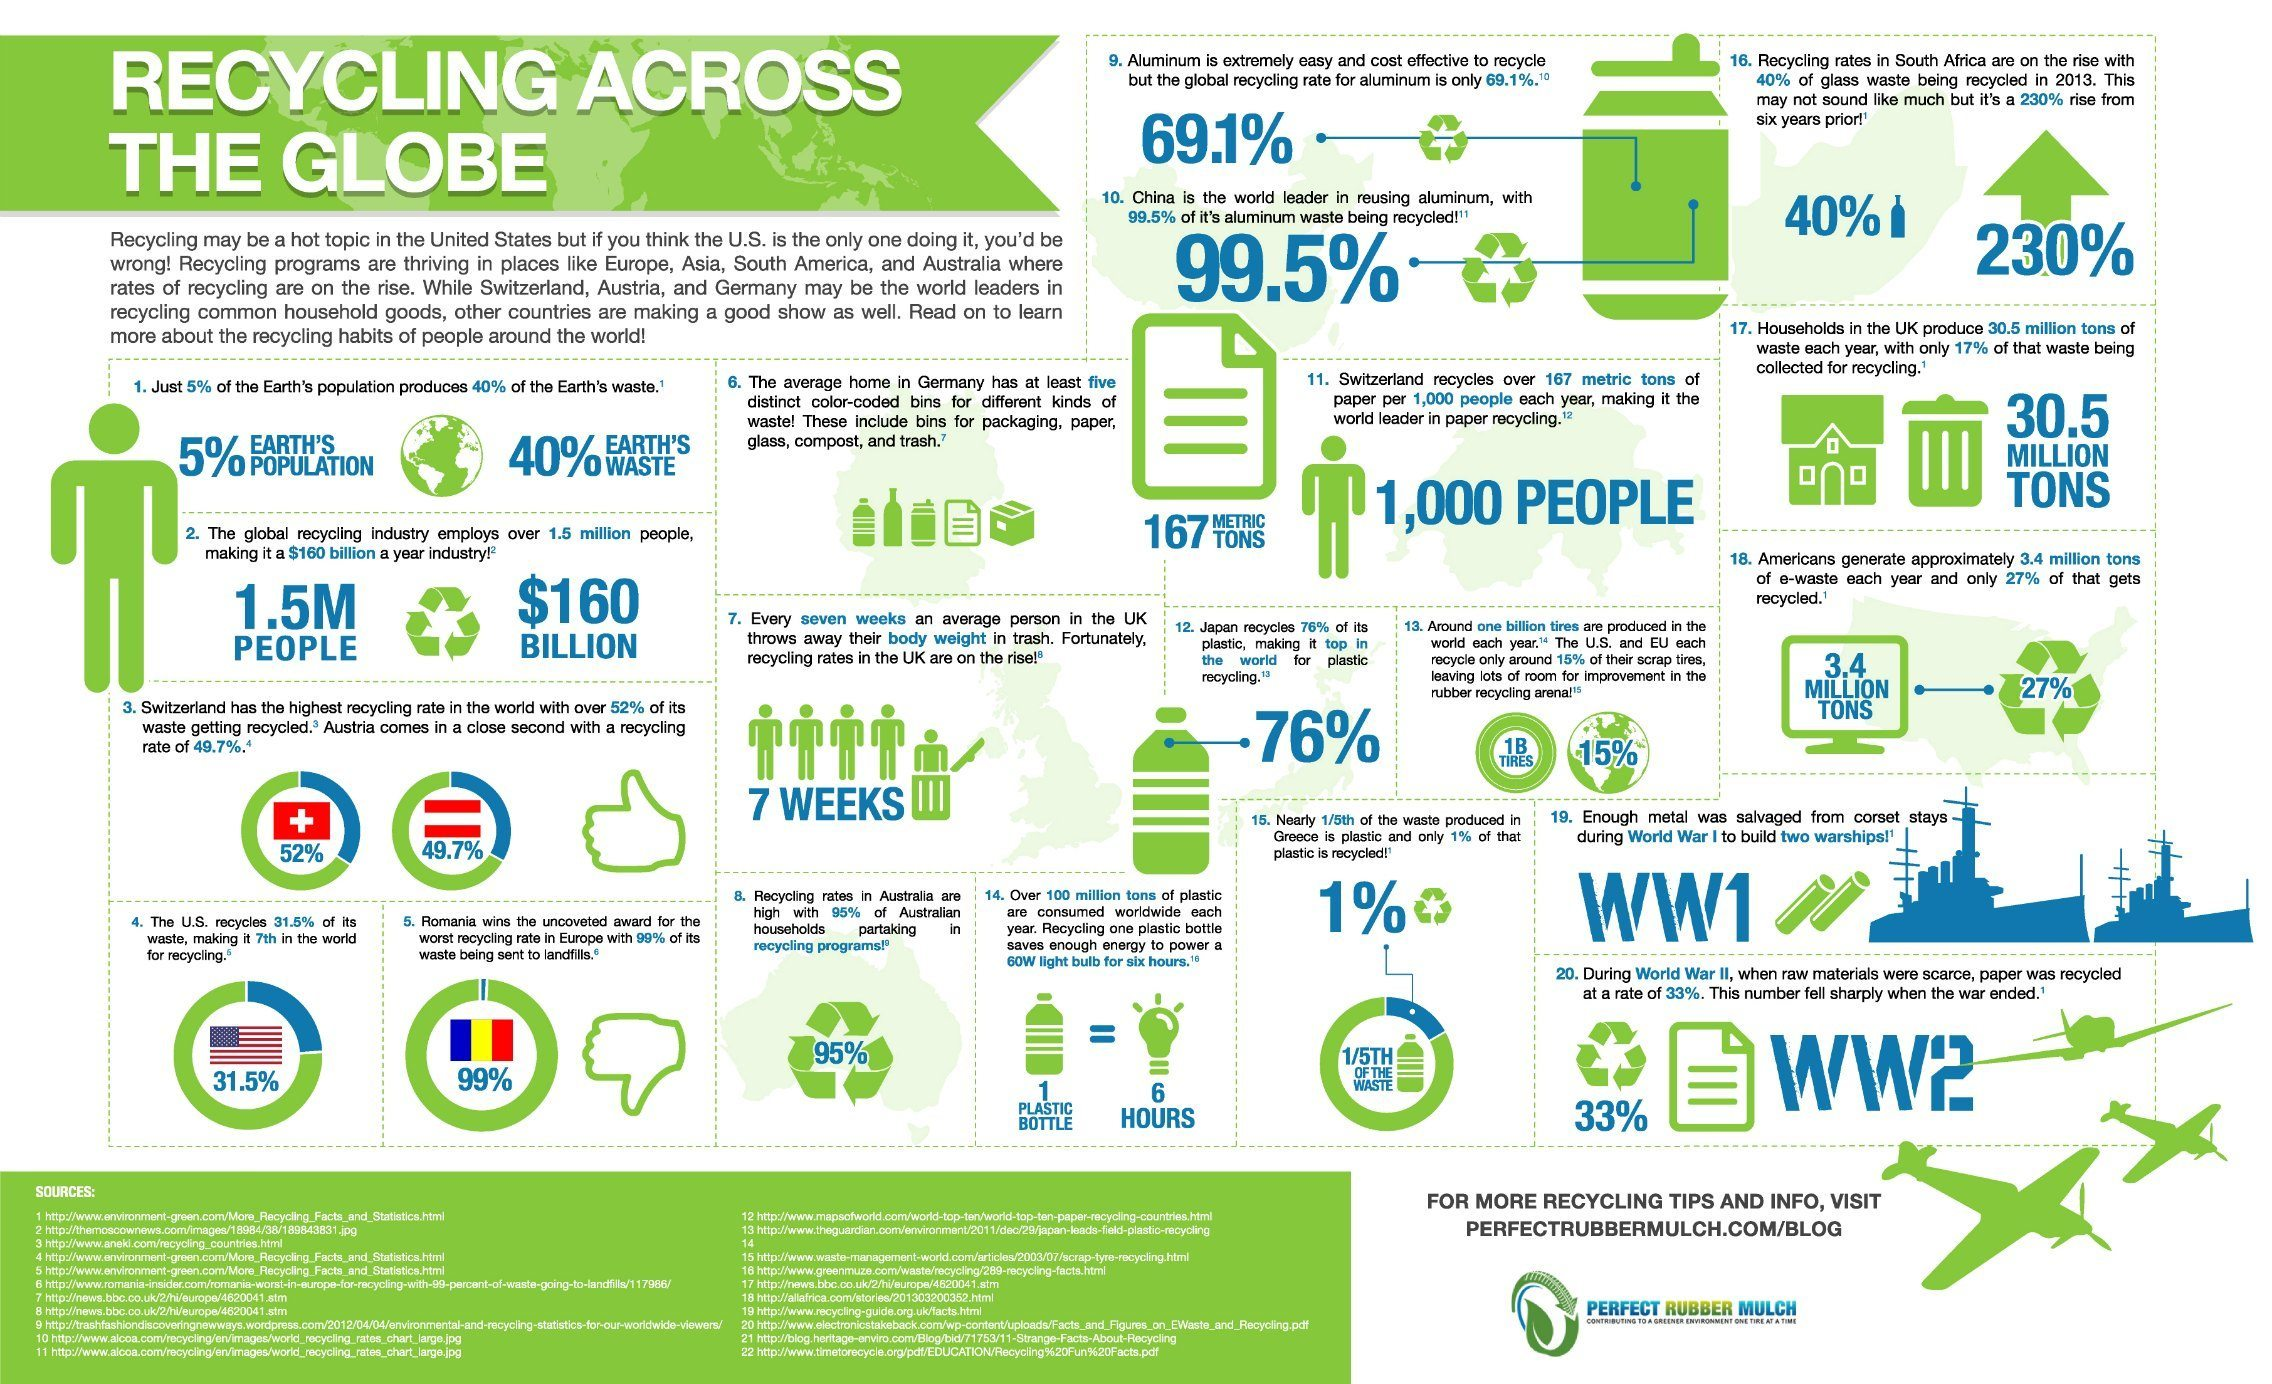 Recycling Across the Globe